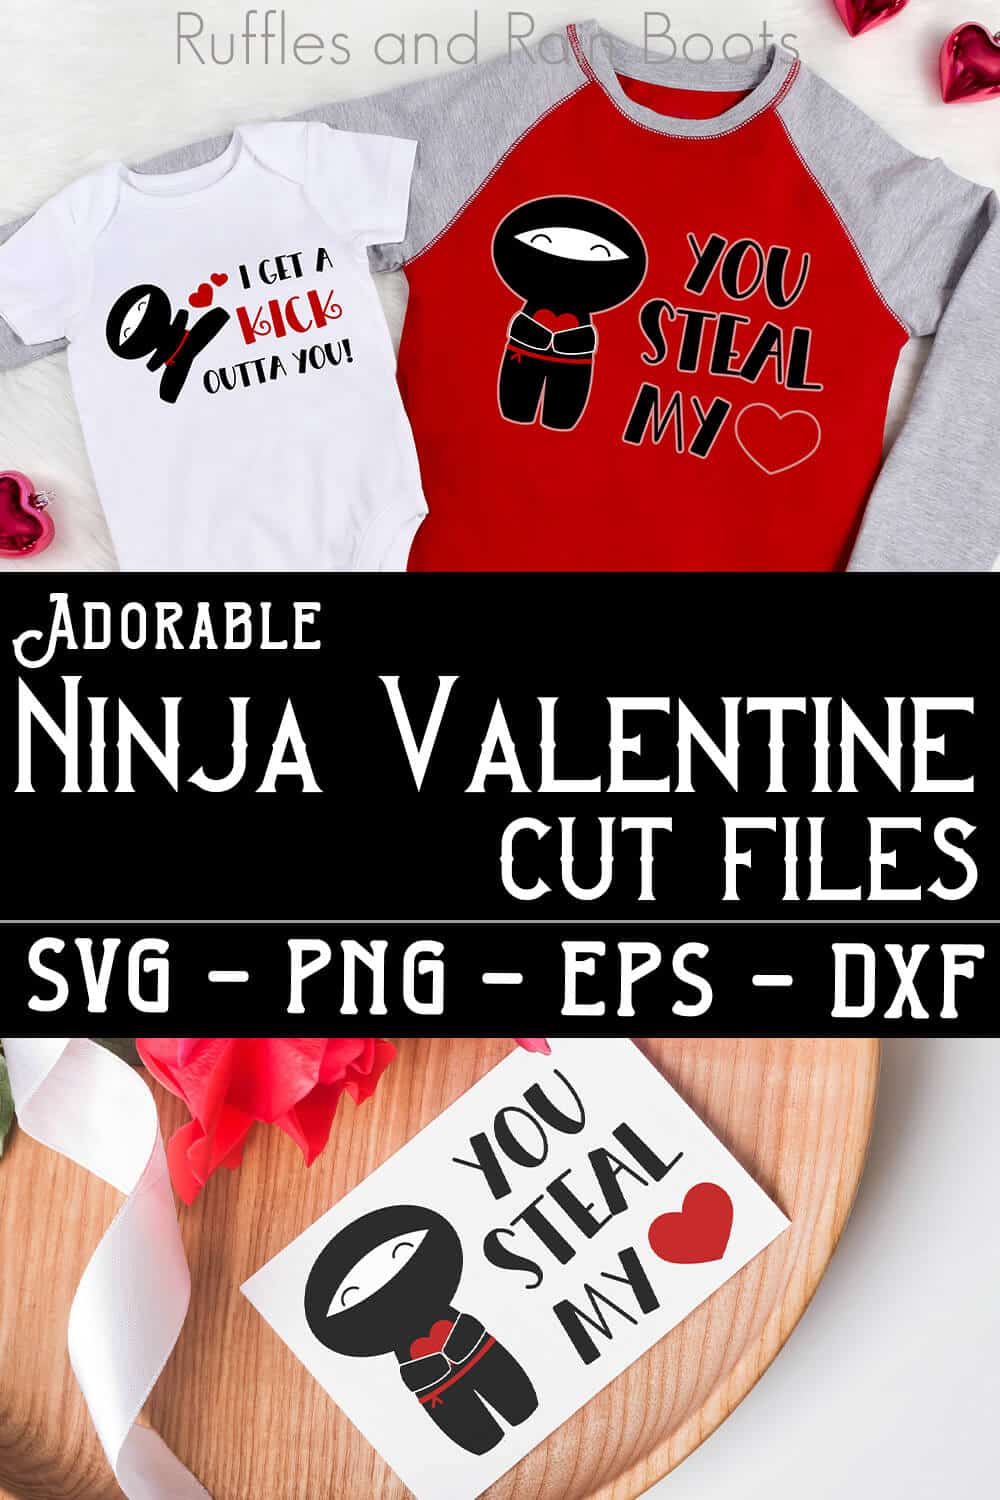 photo collage of tshirts and valentines card with valentine ninja cut files with text which reads adorable ninja valentine cut files svg png eps dxf